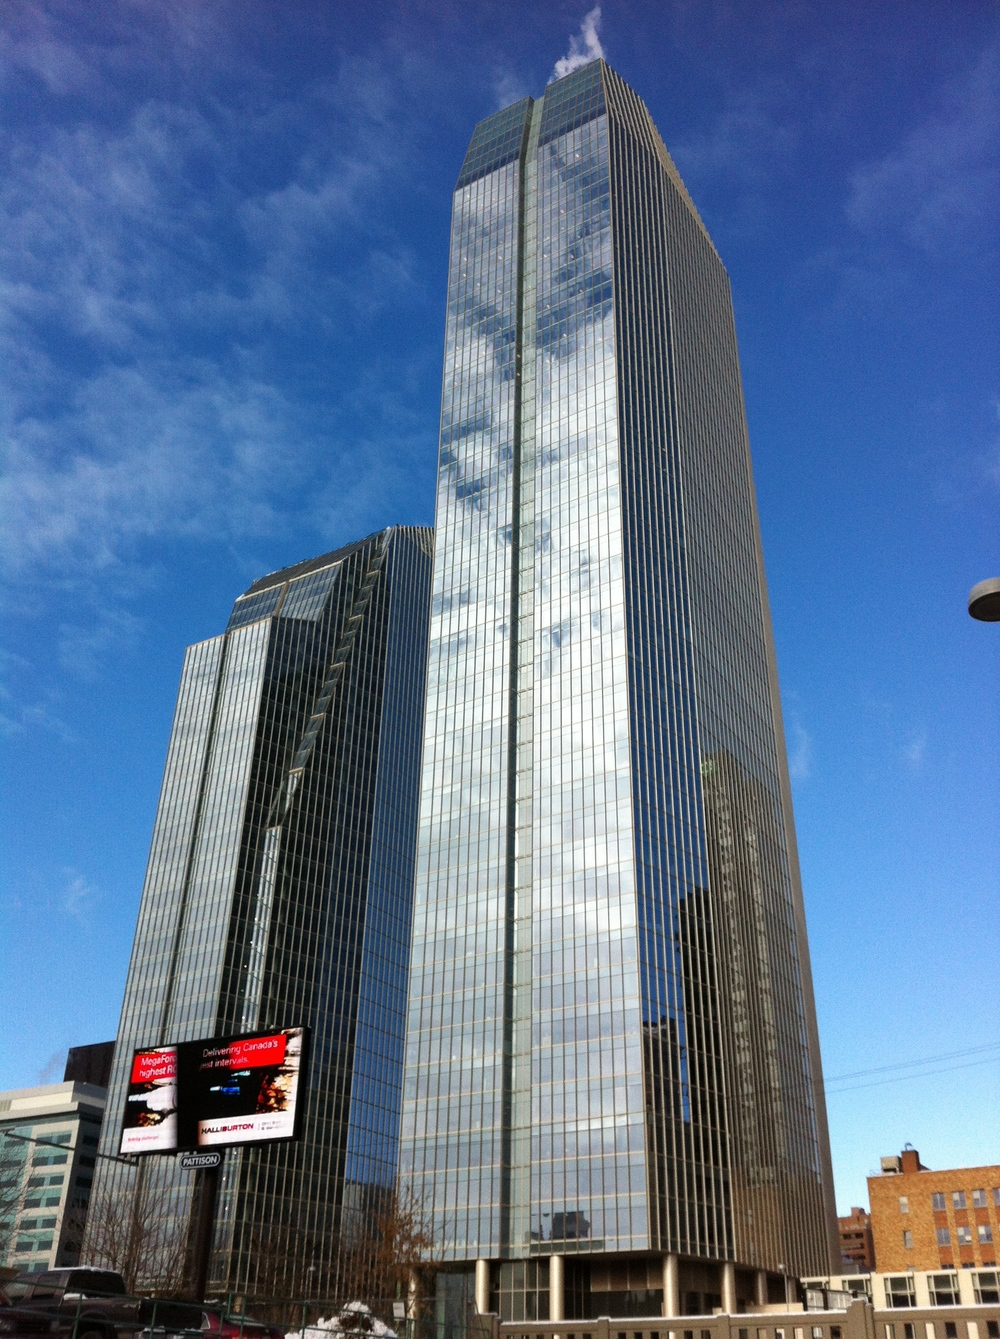 The twin towers of Eight Avenue Place are one of several mega office towers recently completed or under construction. Downtown Calgary is home to one of the largest concentration of corporate headquarters in North America.